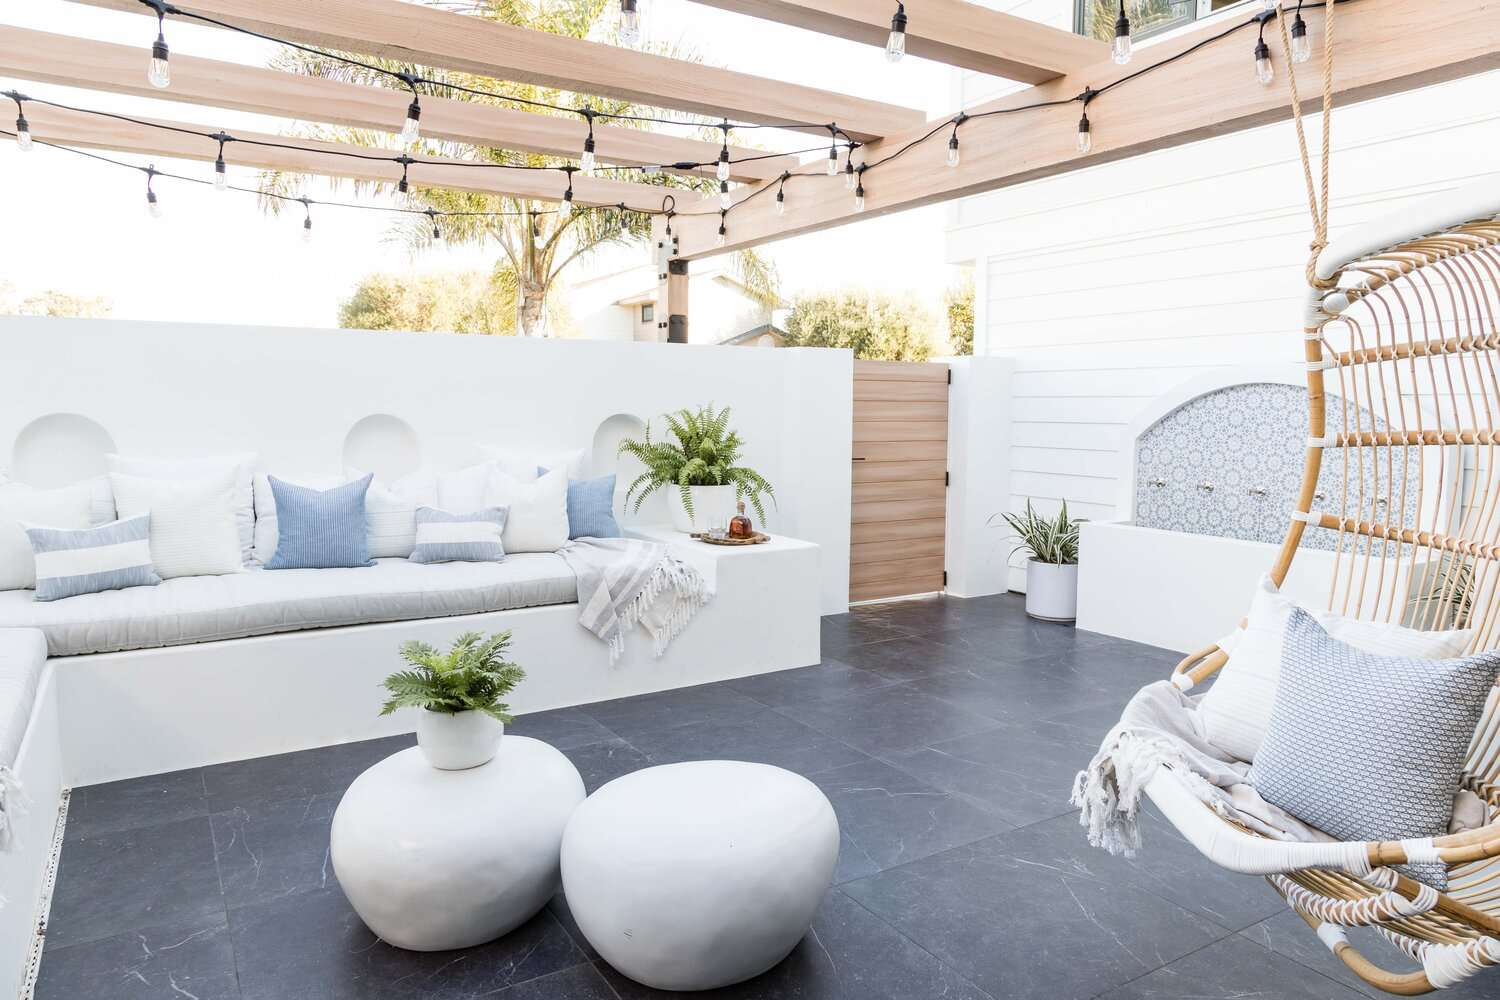 Outdoor patio with stylish hanging chair.